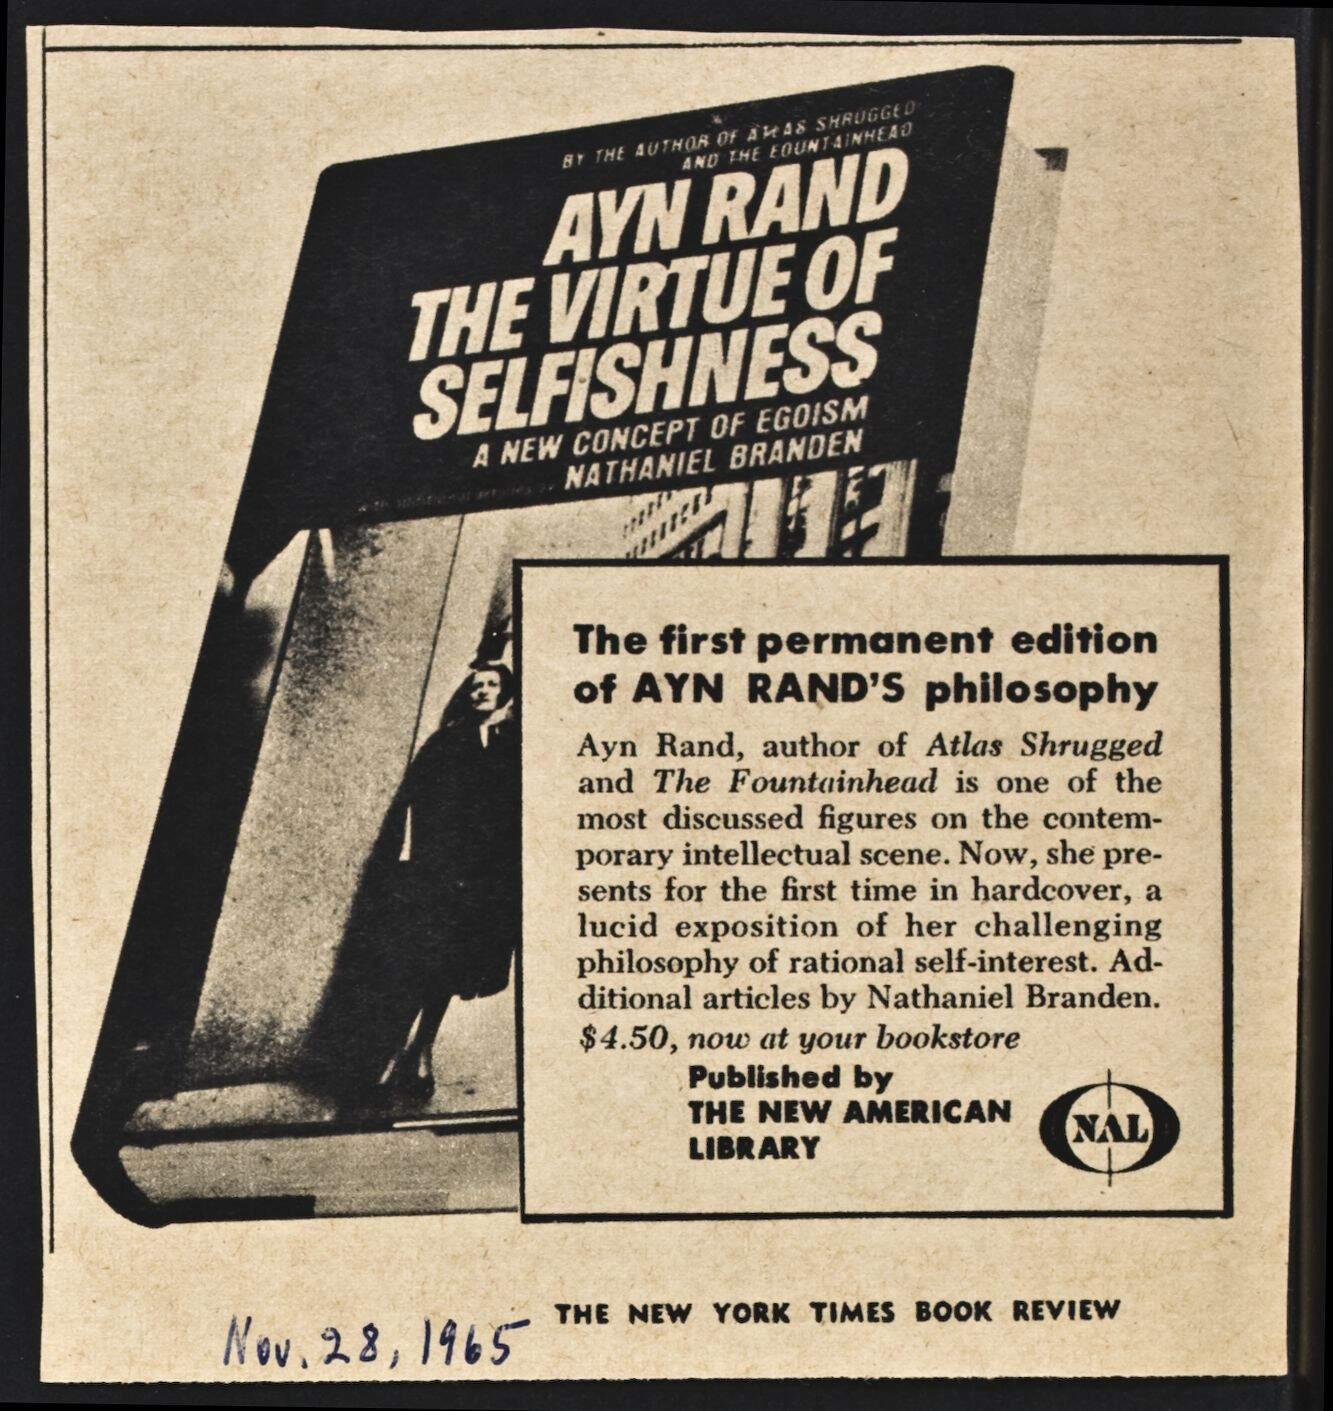 an analysis of objectivism a philosophical system developed by ayn rand